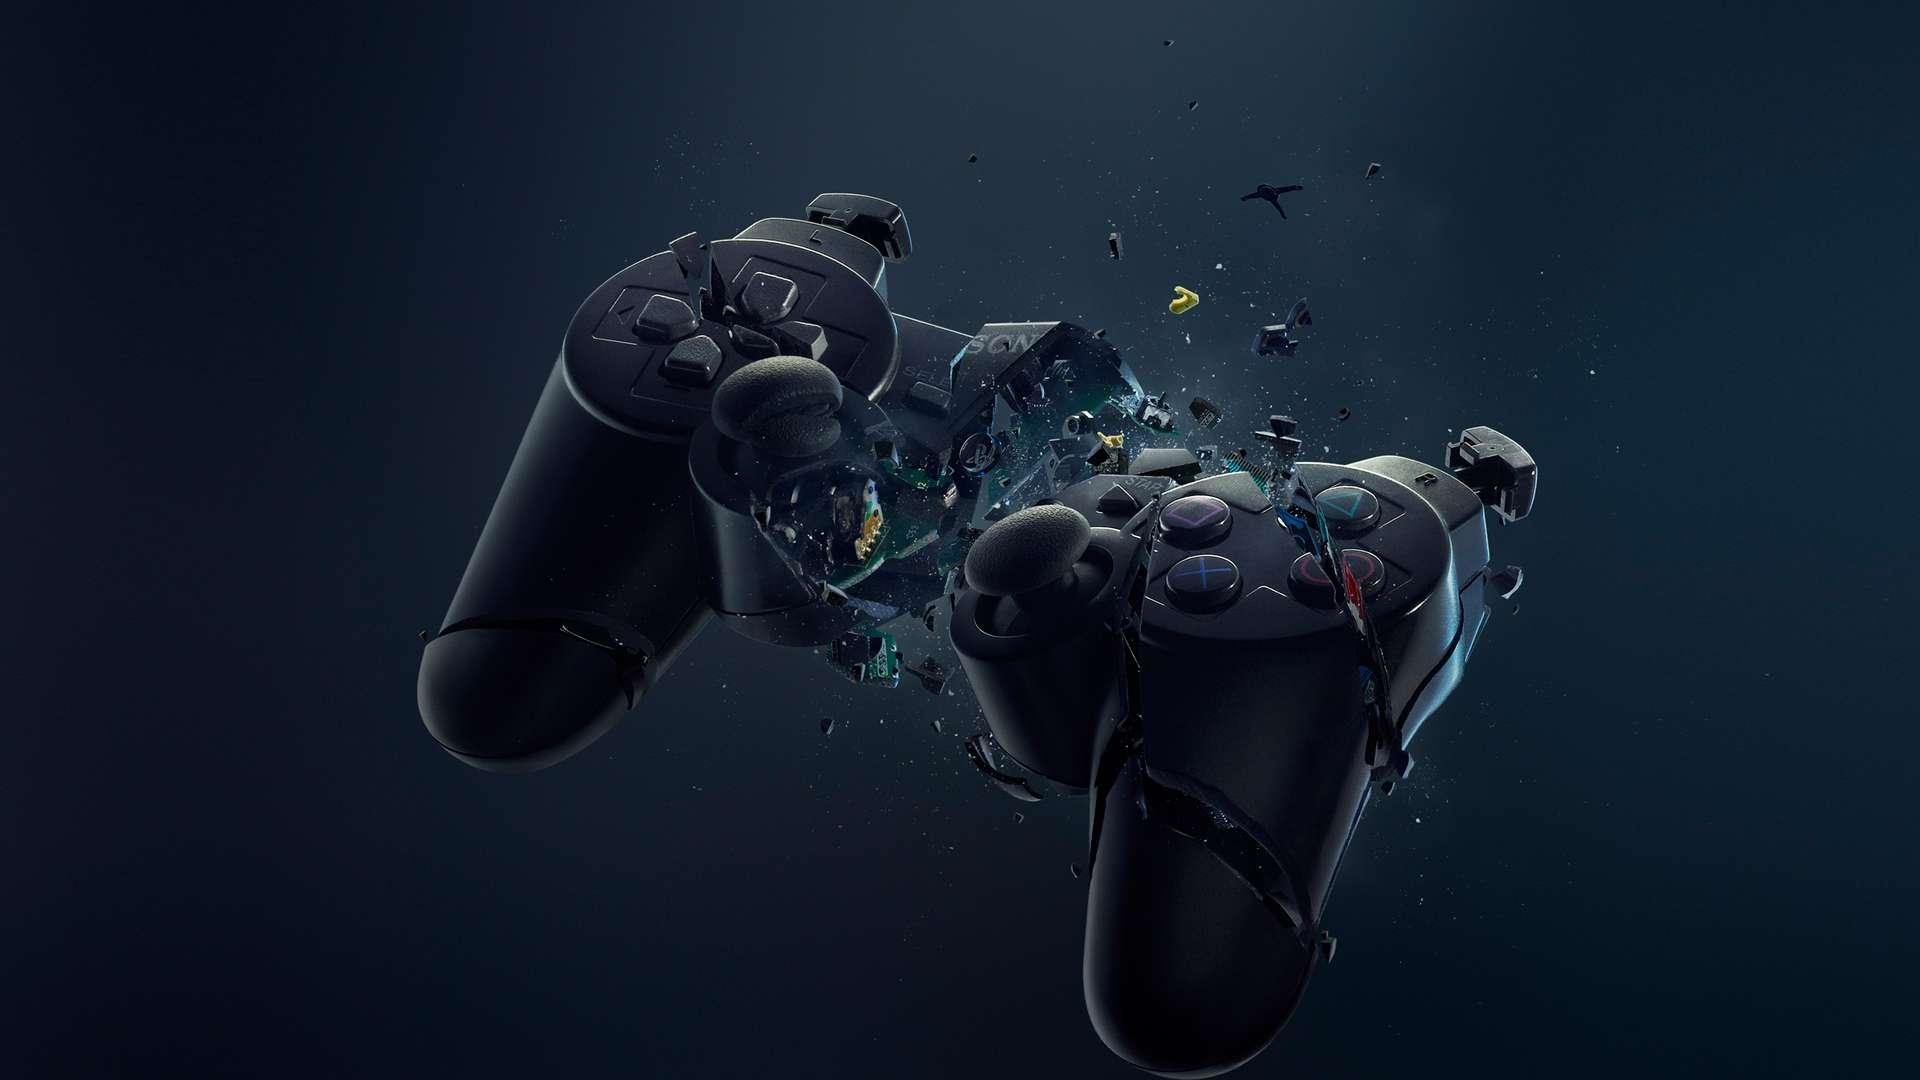 Res: 1920x1080, Add media Report RSS Playstation 4 Controller - Wallpaper (view original)